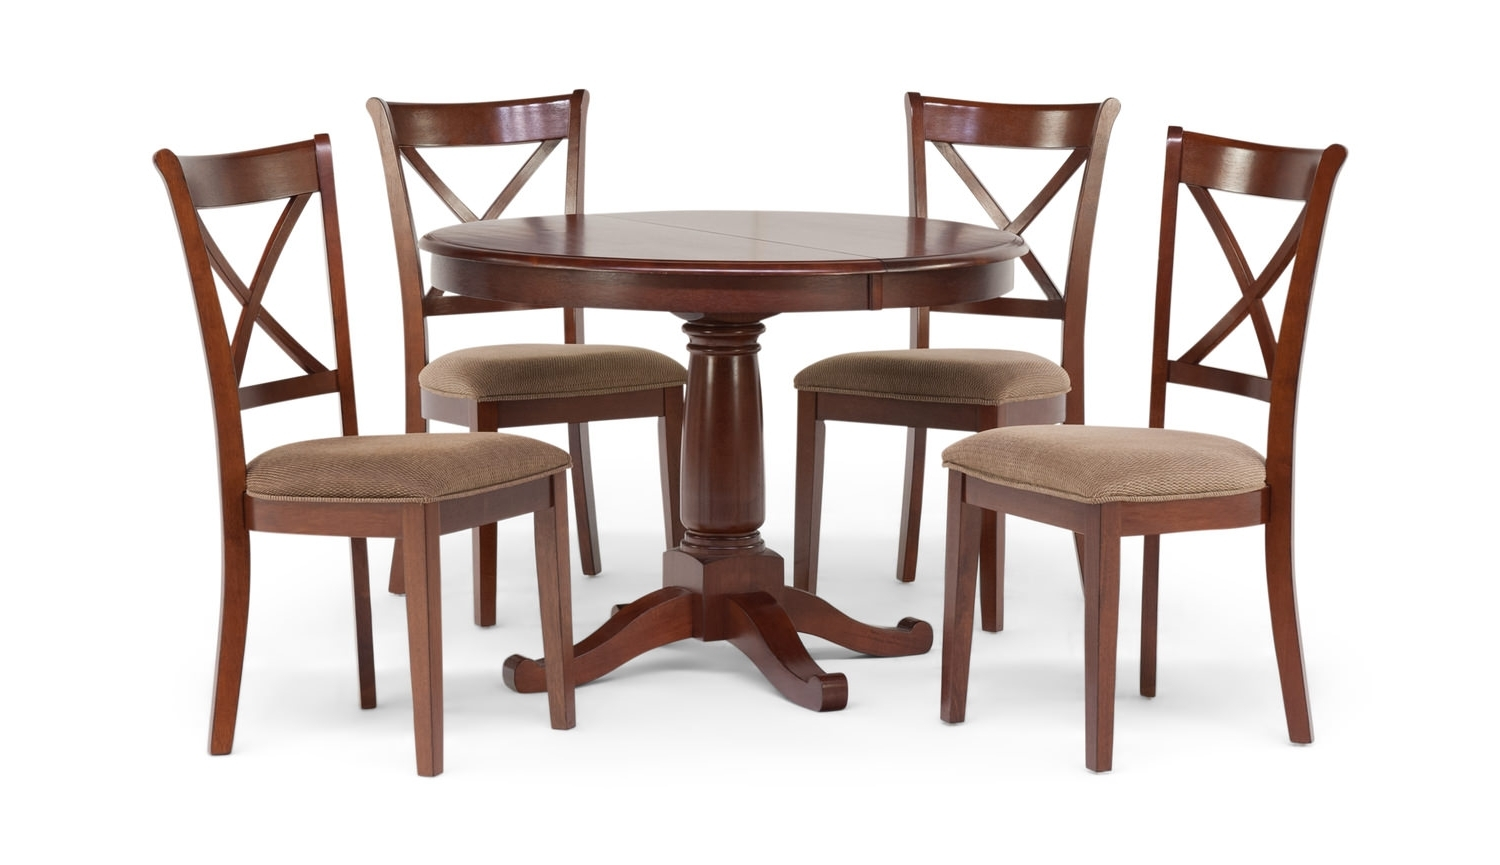 Hom Furniture Intended For Well Liked Caden Rectangle Dining Tables (Gallery 3 of 25)